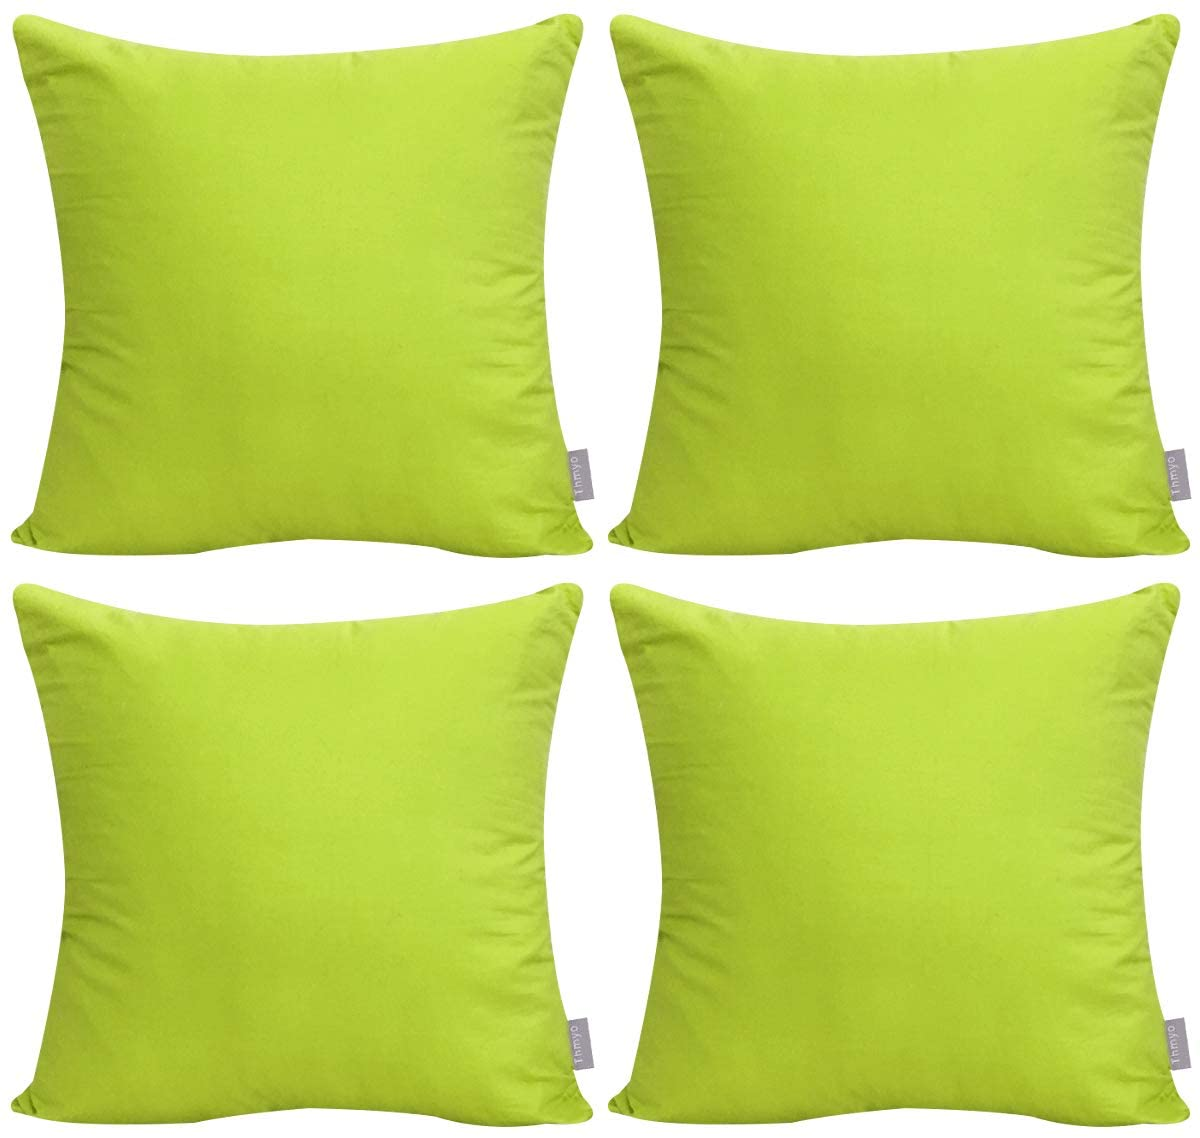 4-Pack 100% Cotton Comfortable Solid Decorative Throw Pillow Case Square Cushion Cover Pillowcase(Cover Only,No Insert)(18x18 inch/ 45x45cm,Light Green)